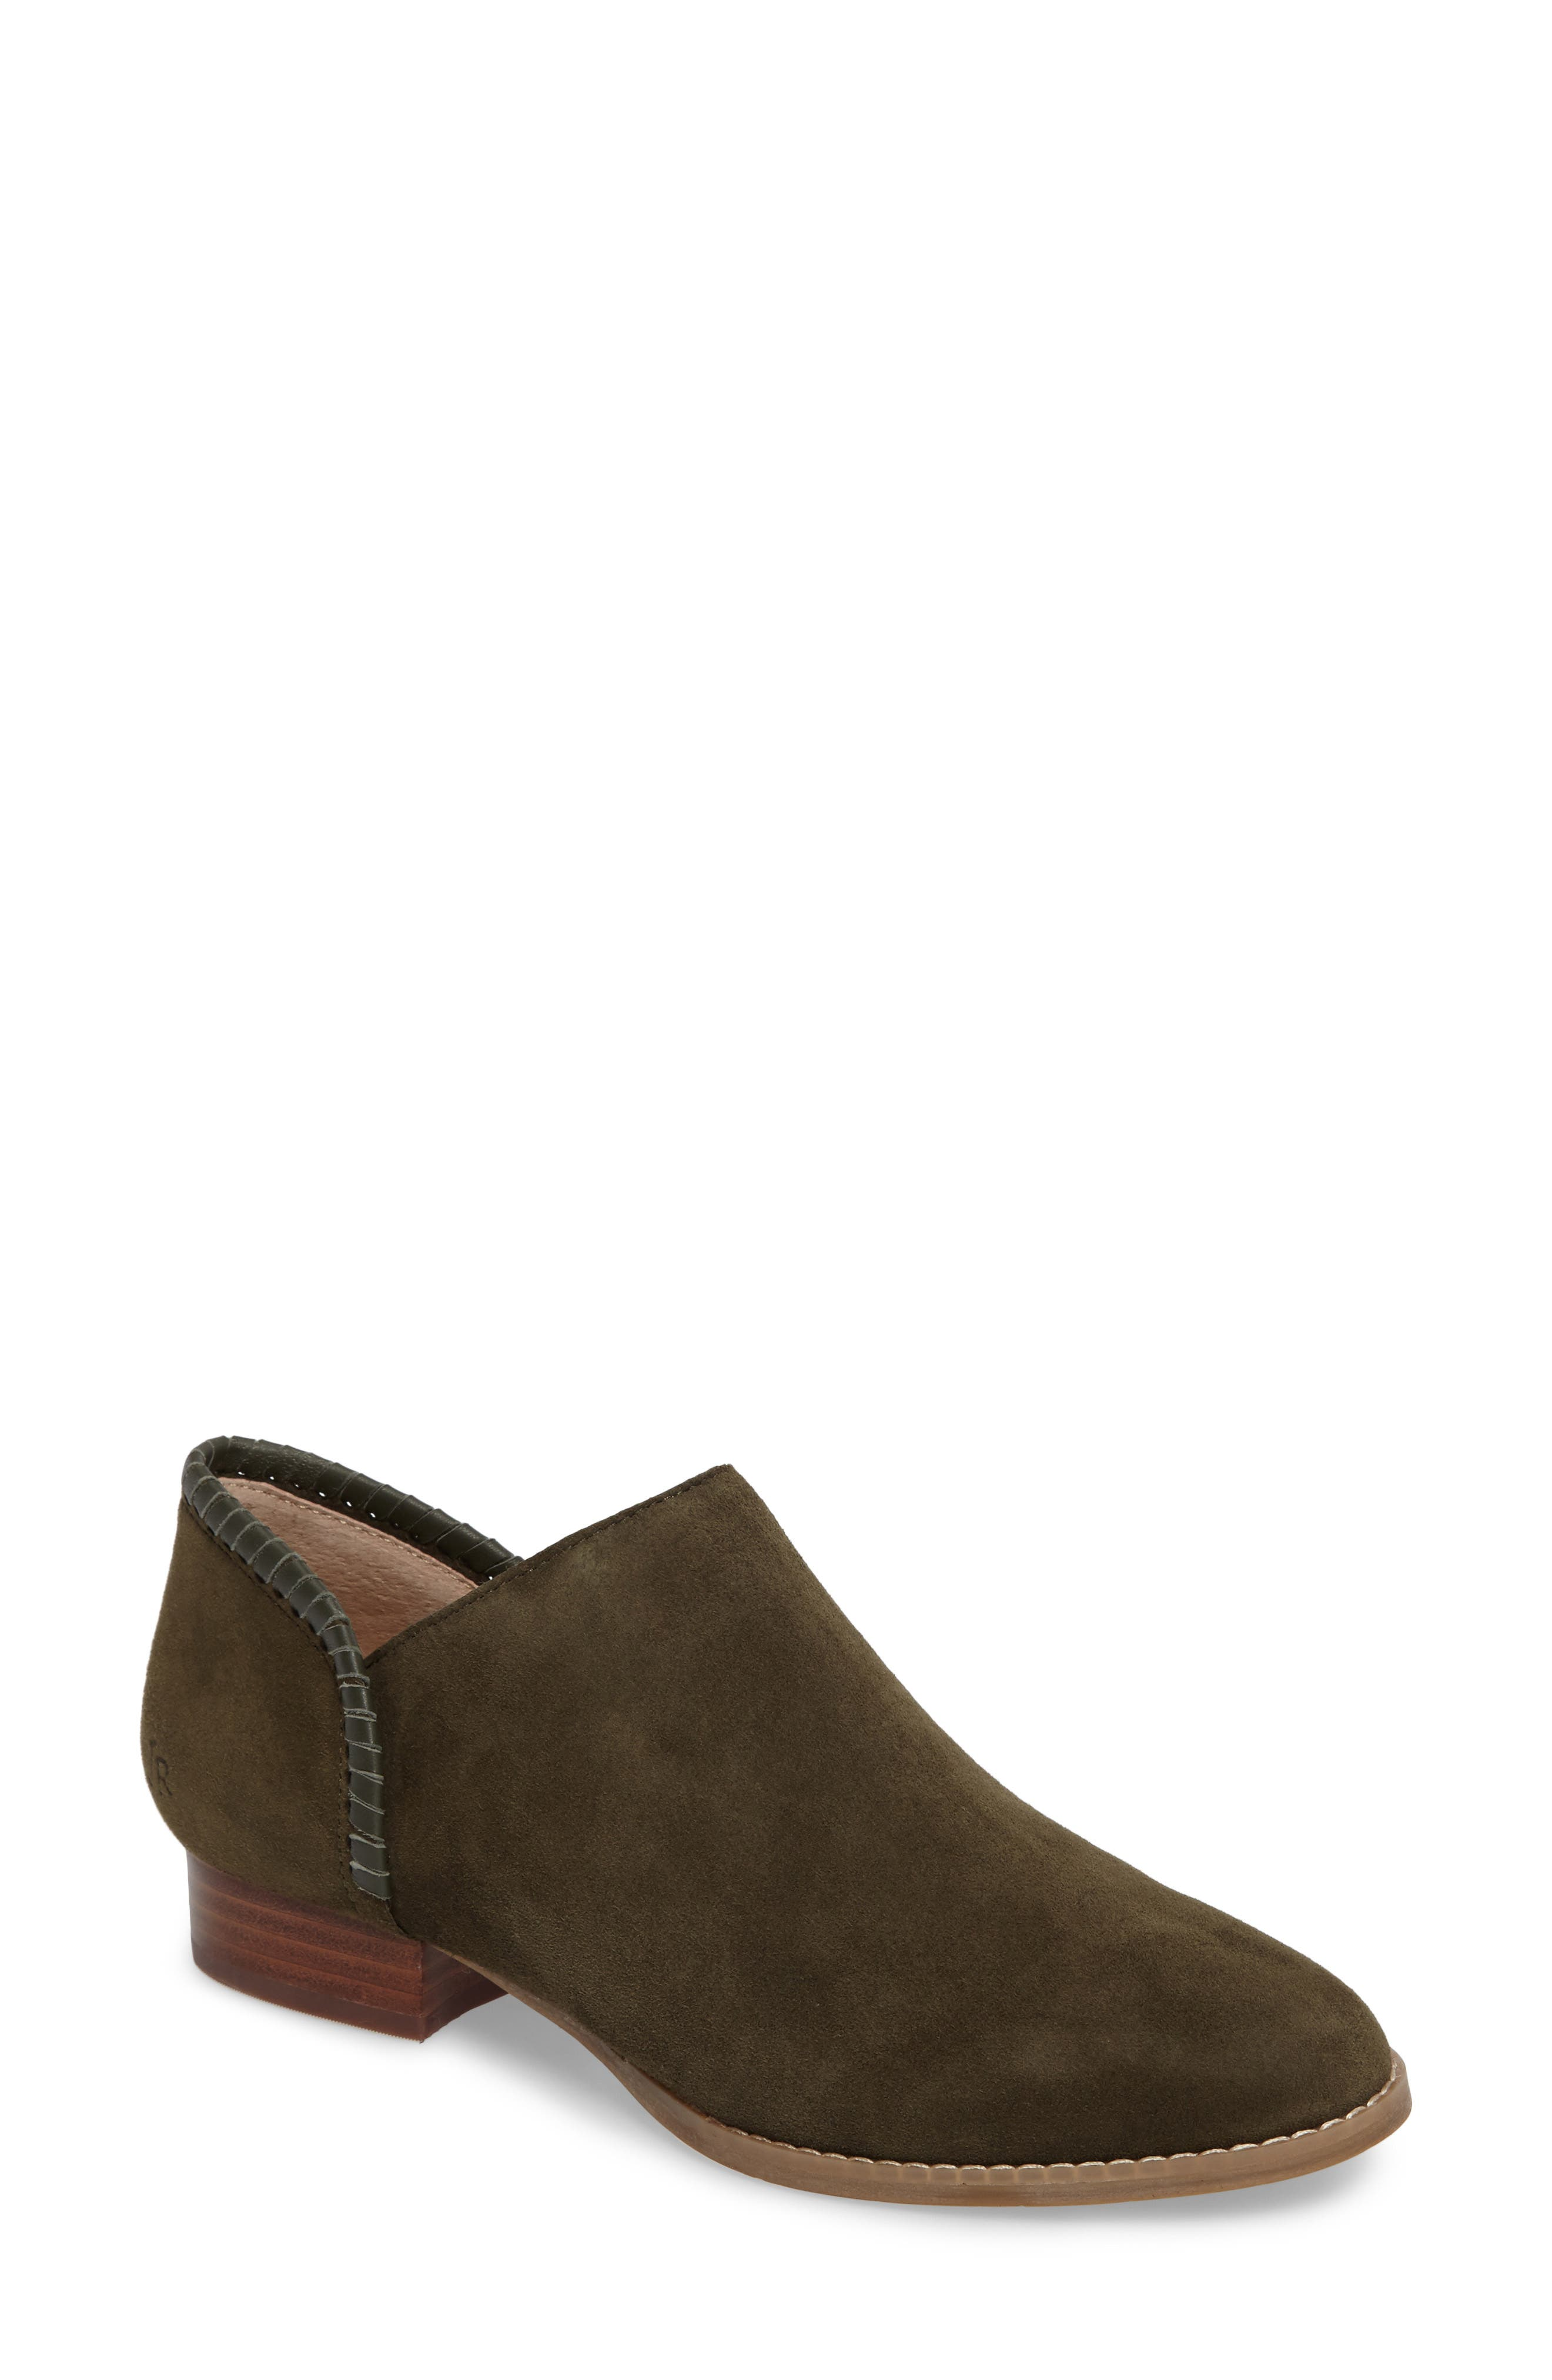 Avery Low Bootie,                             Main thumbnail 1, color,                             Olive Suede